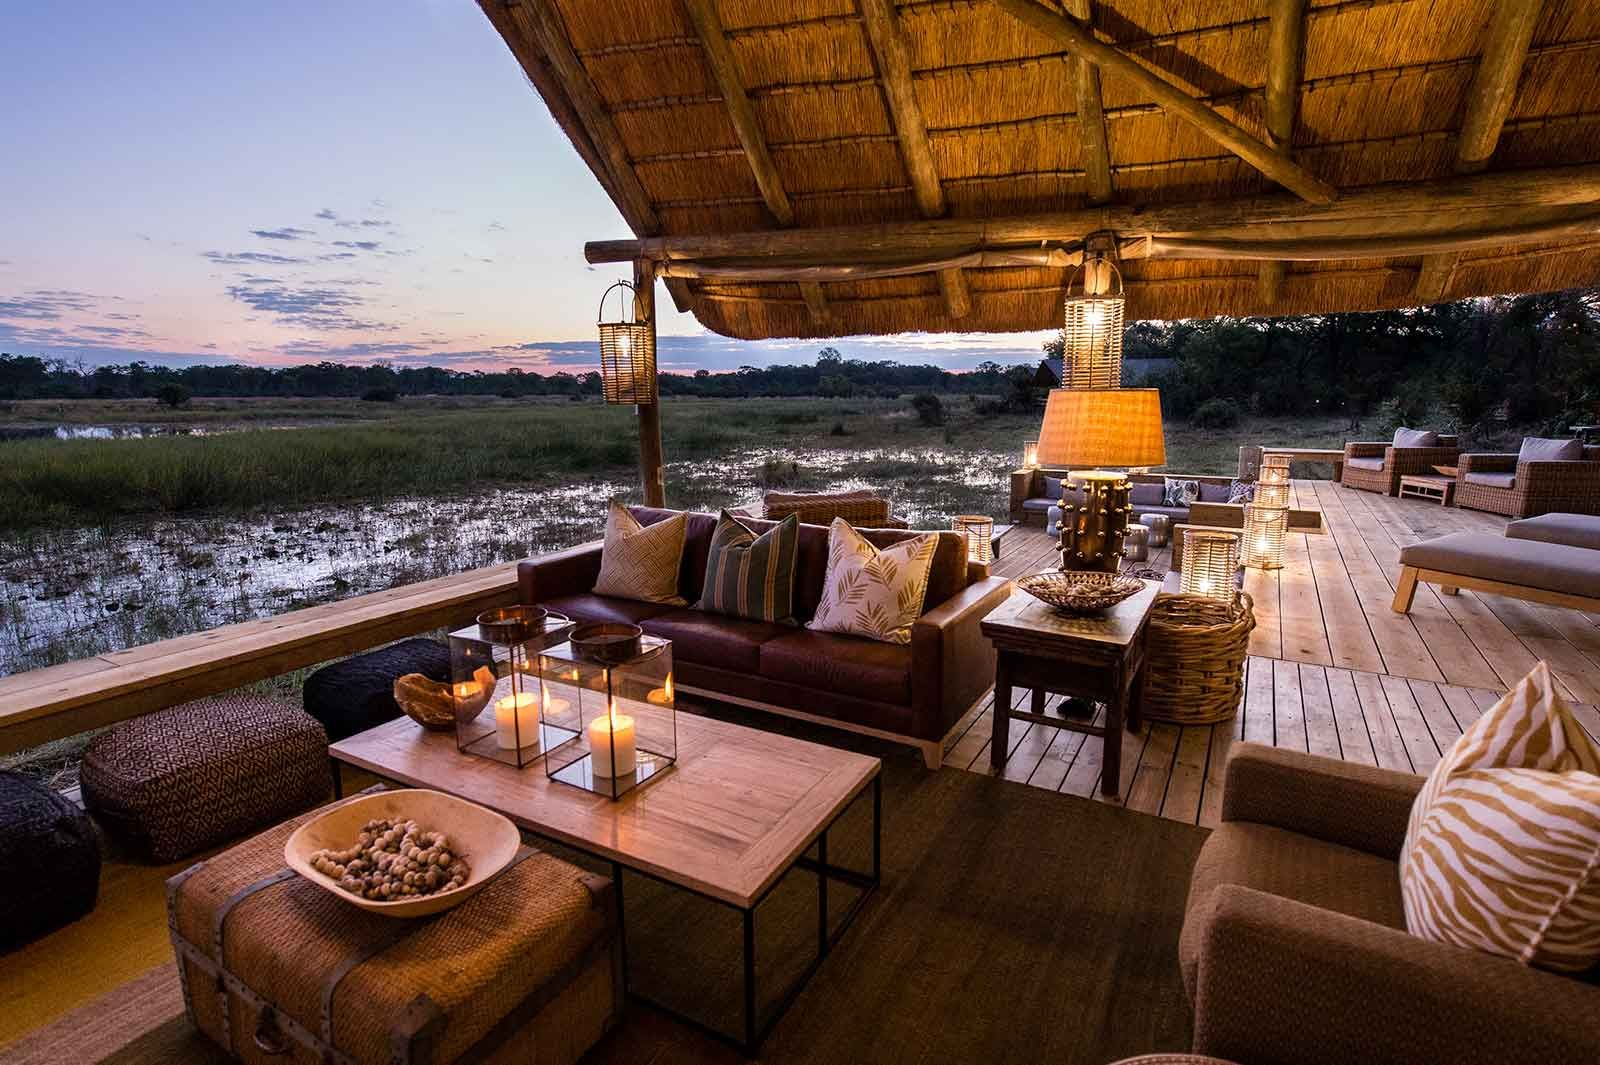 A Romantic Botswana Safari